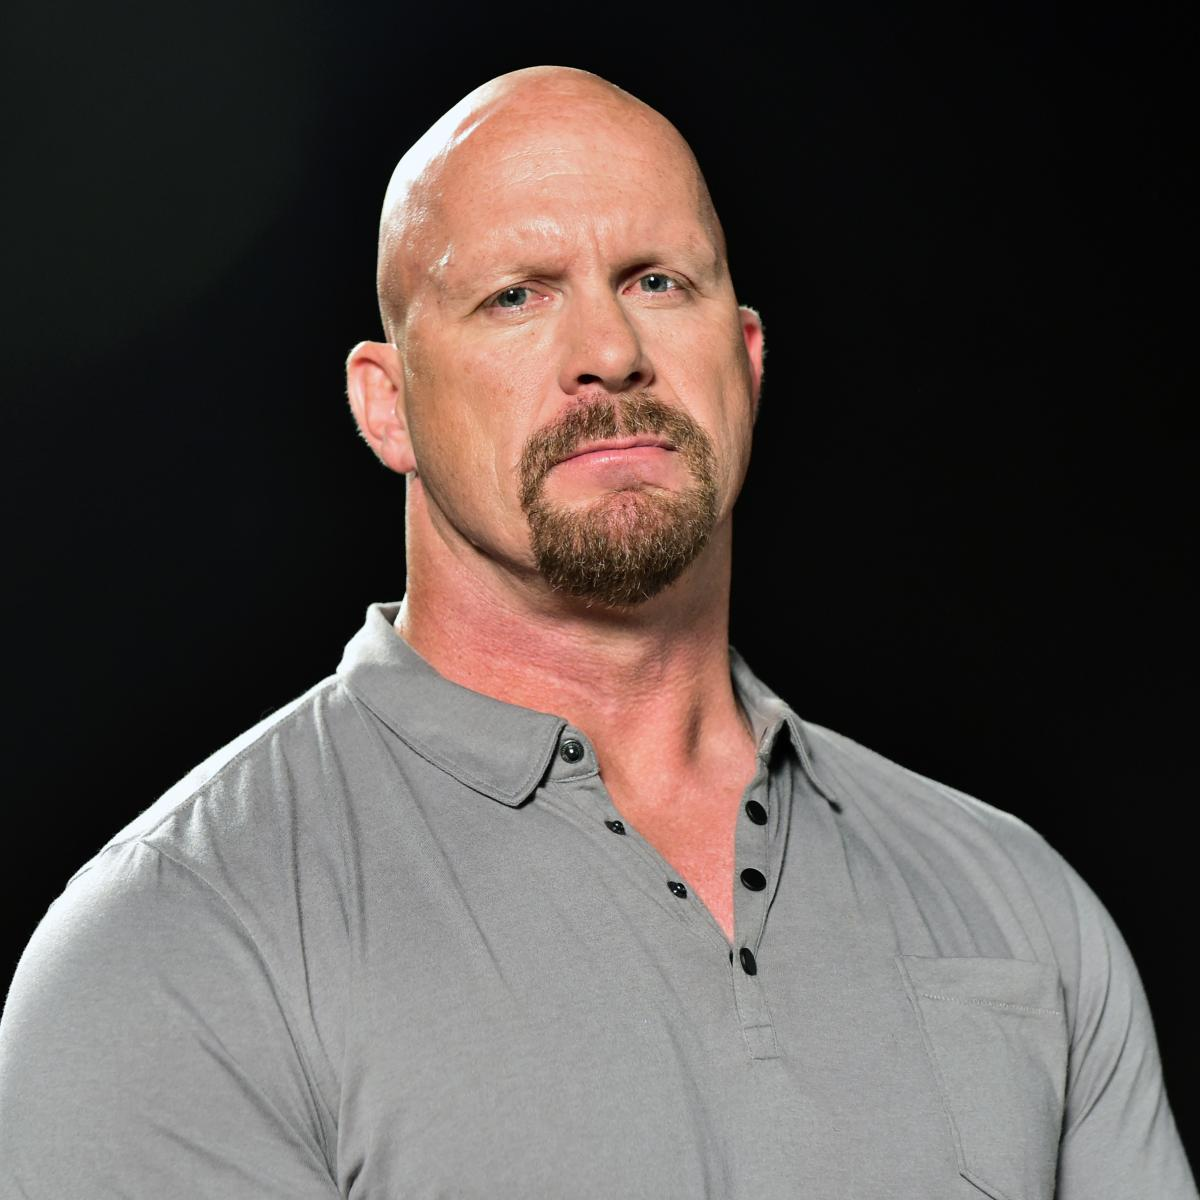 Stone Cold Steve Austin Admits He Could Wrestle 1 More Match Ahead of WWE Return